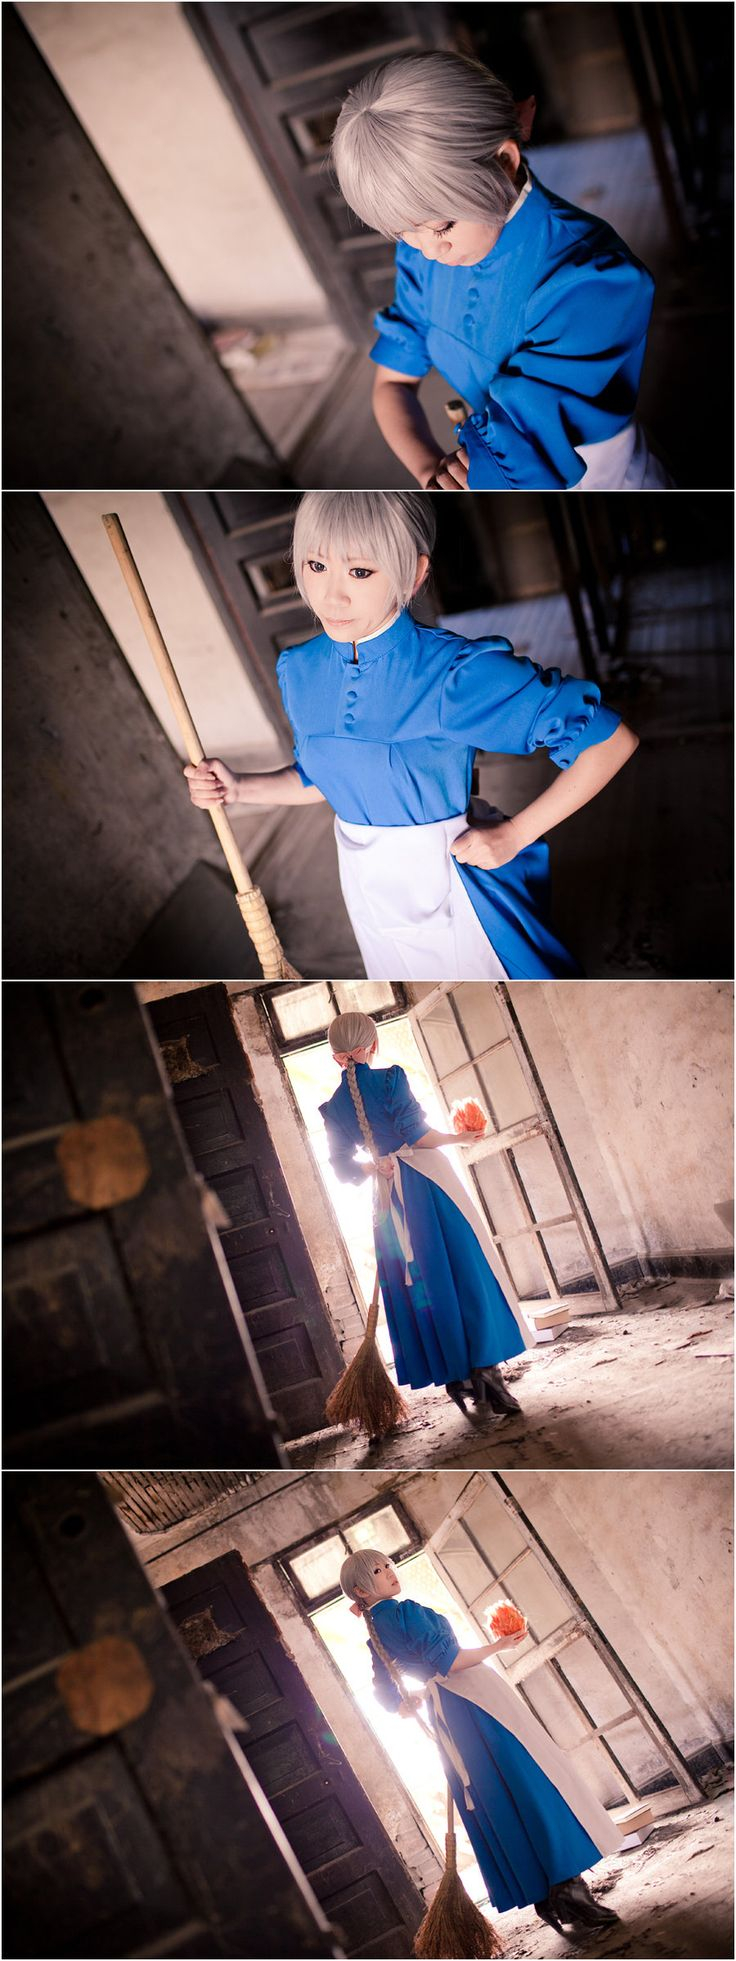 Sophie | Howl no Ugokushiro #cosplay #movie #anime by http://sakina666.deviantart.com/